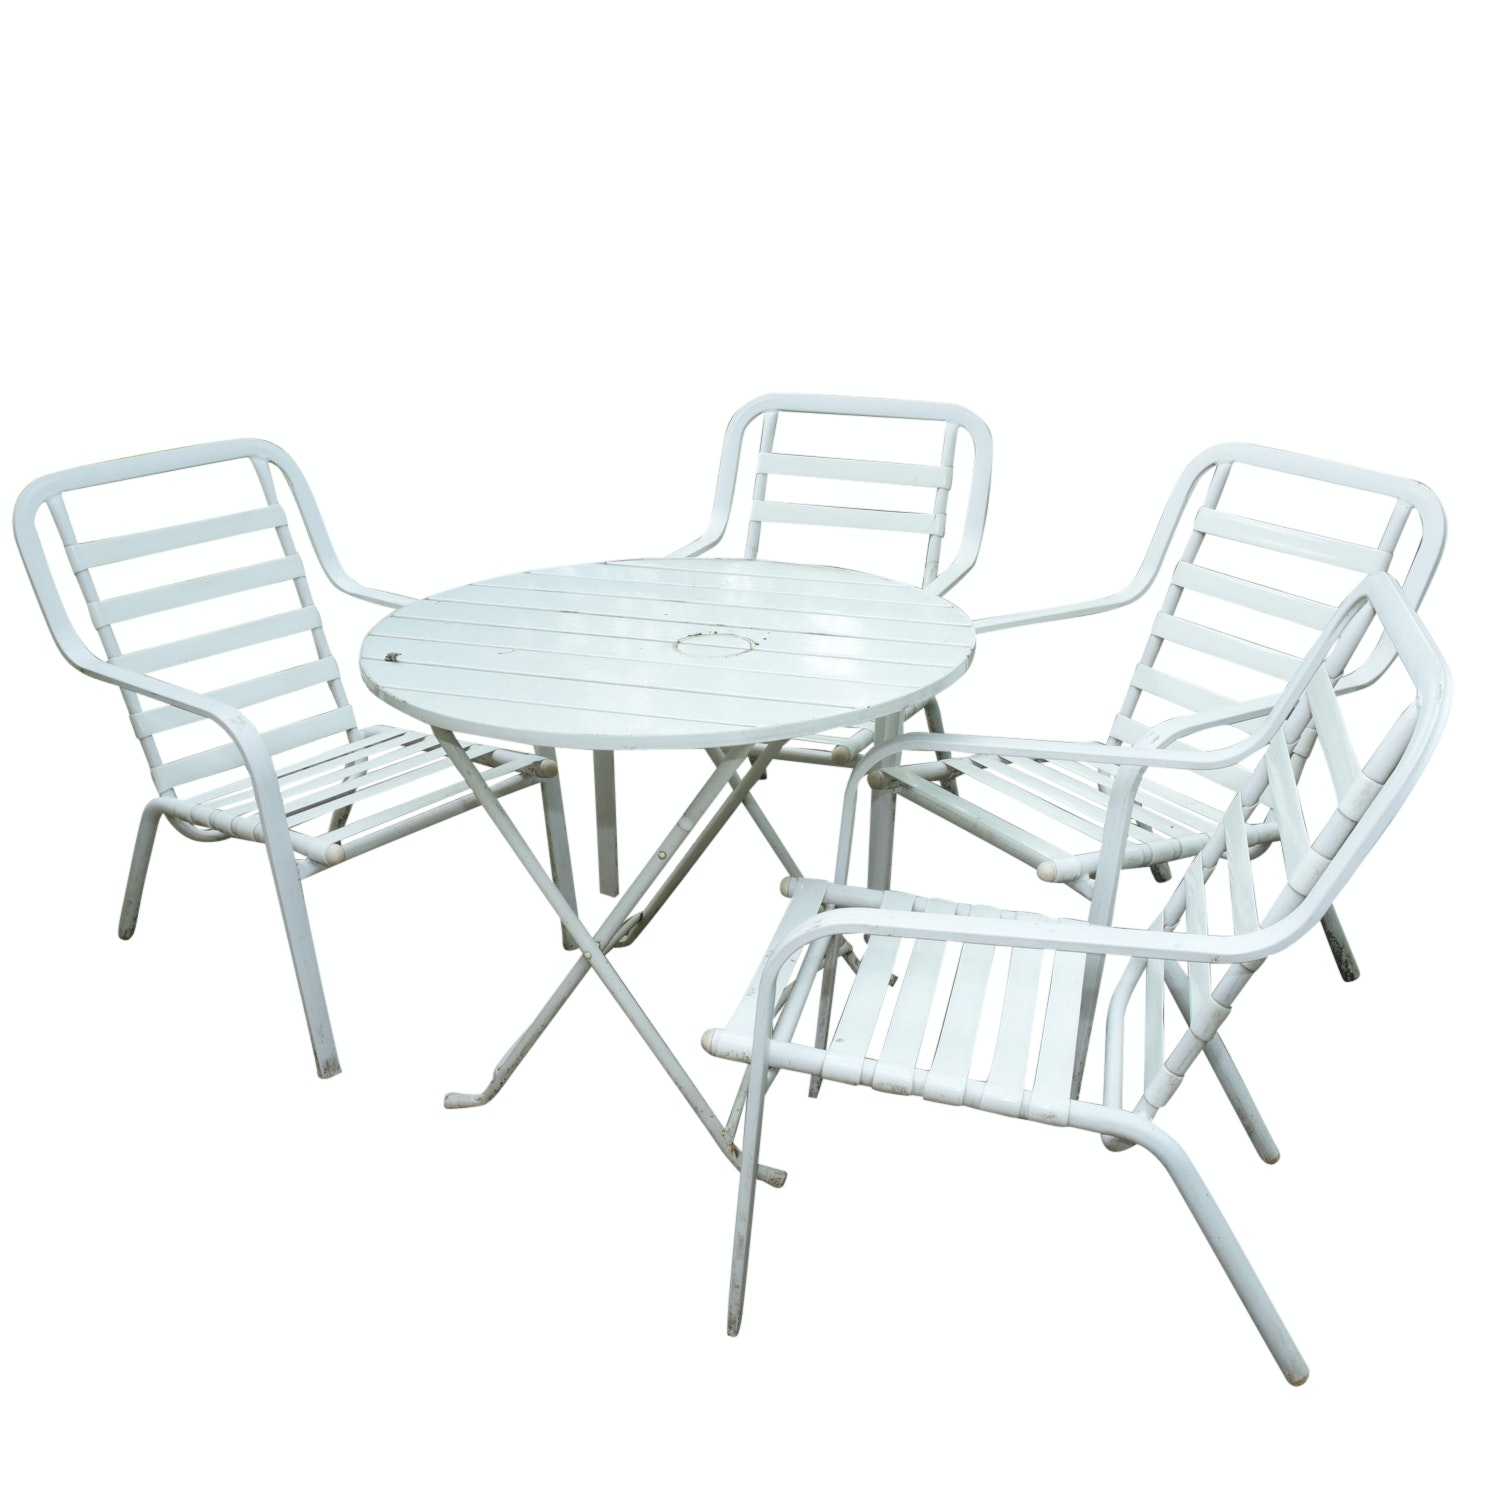 Five-Piece White Metal Patio Set with Seat Cushions